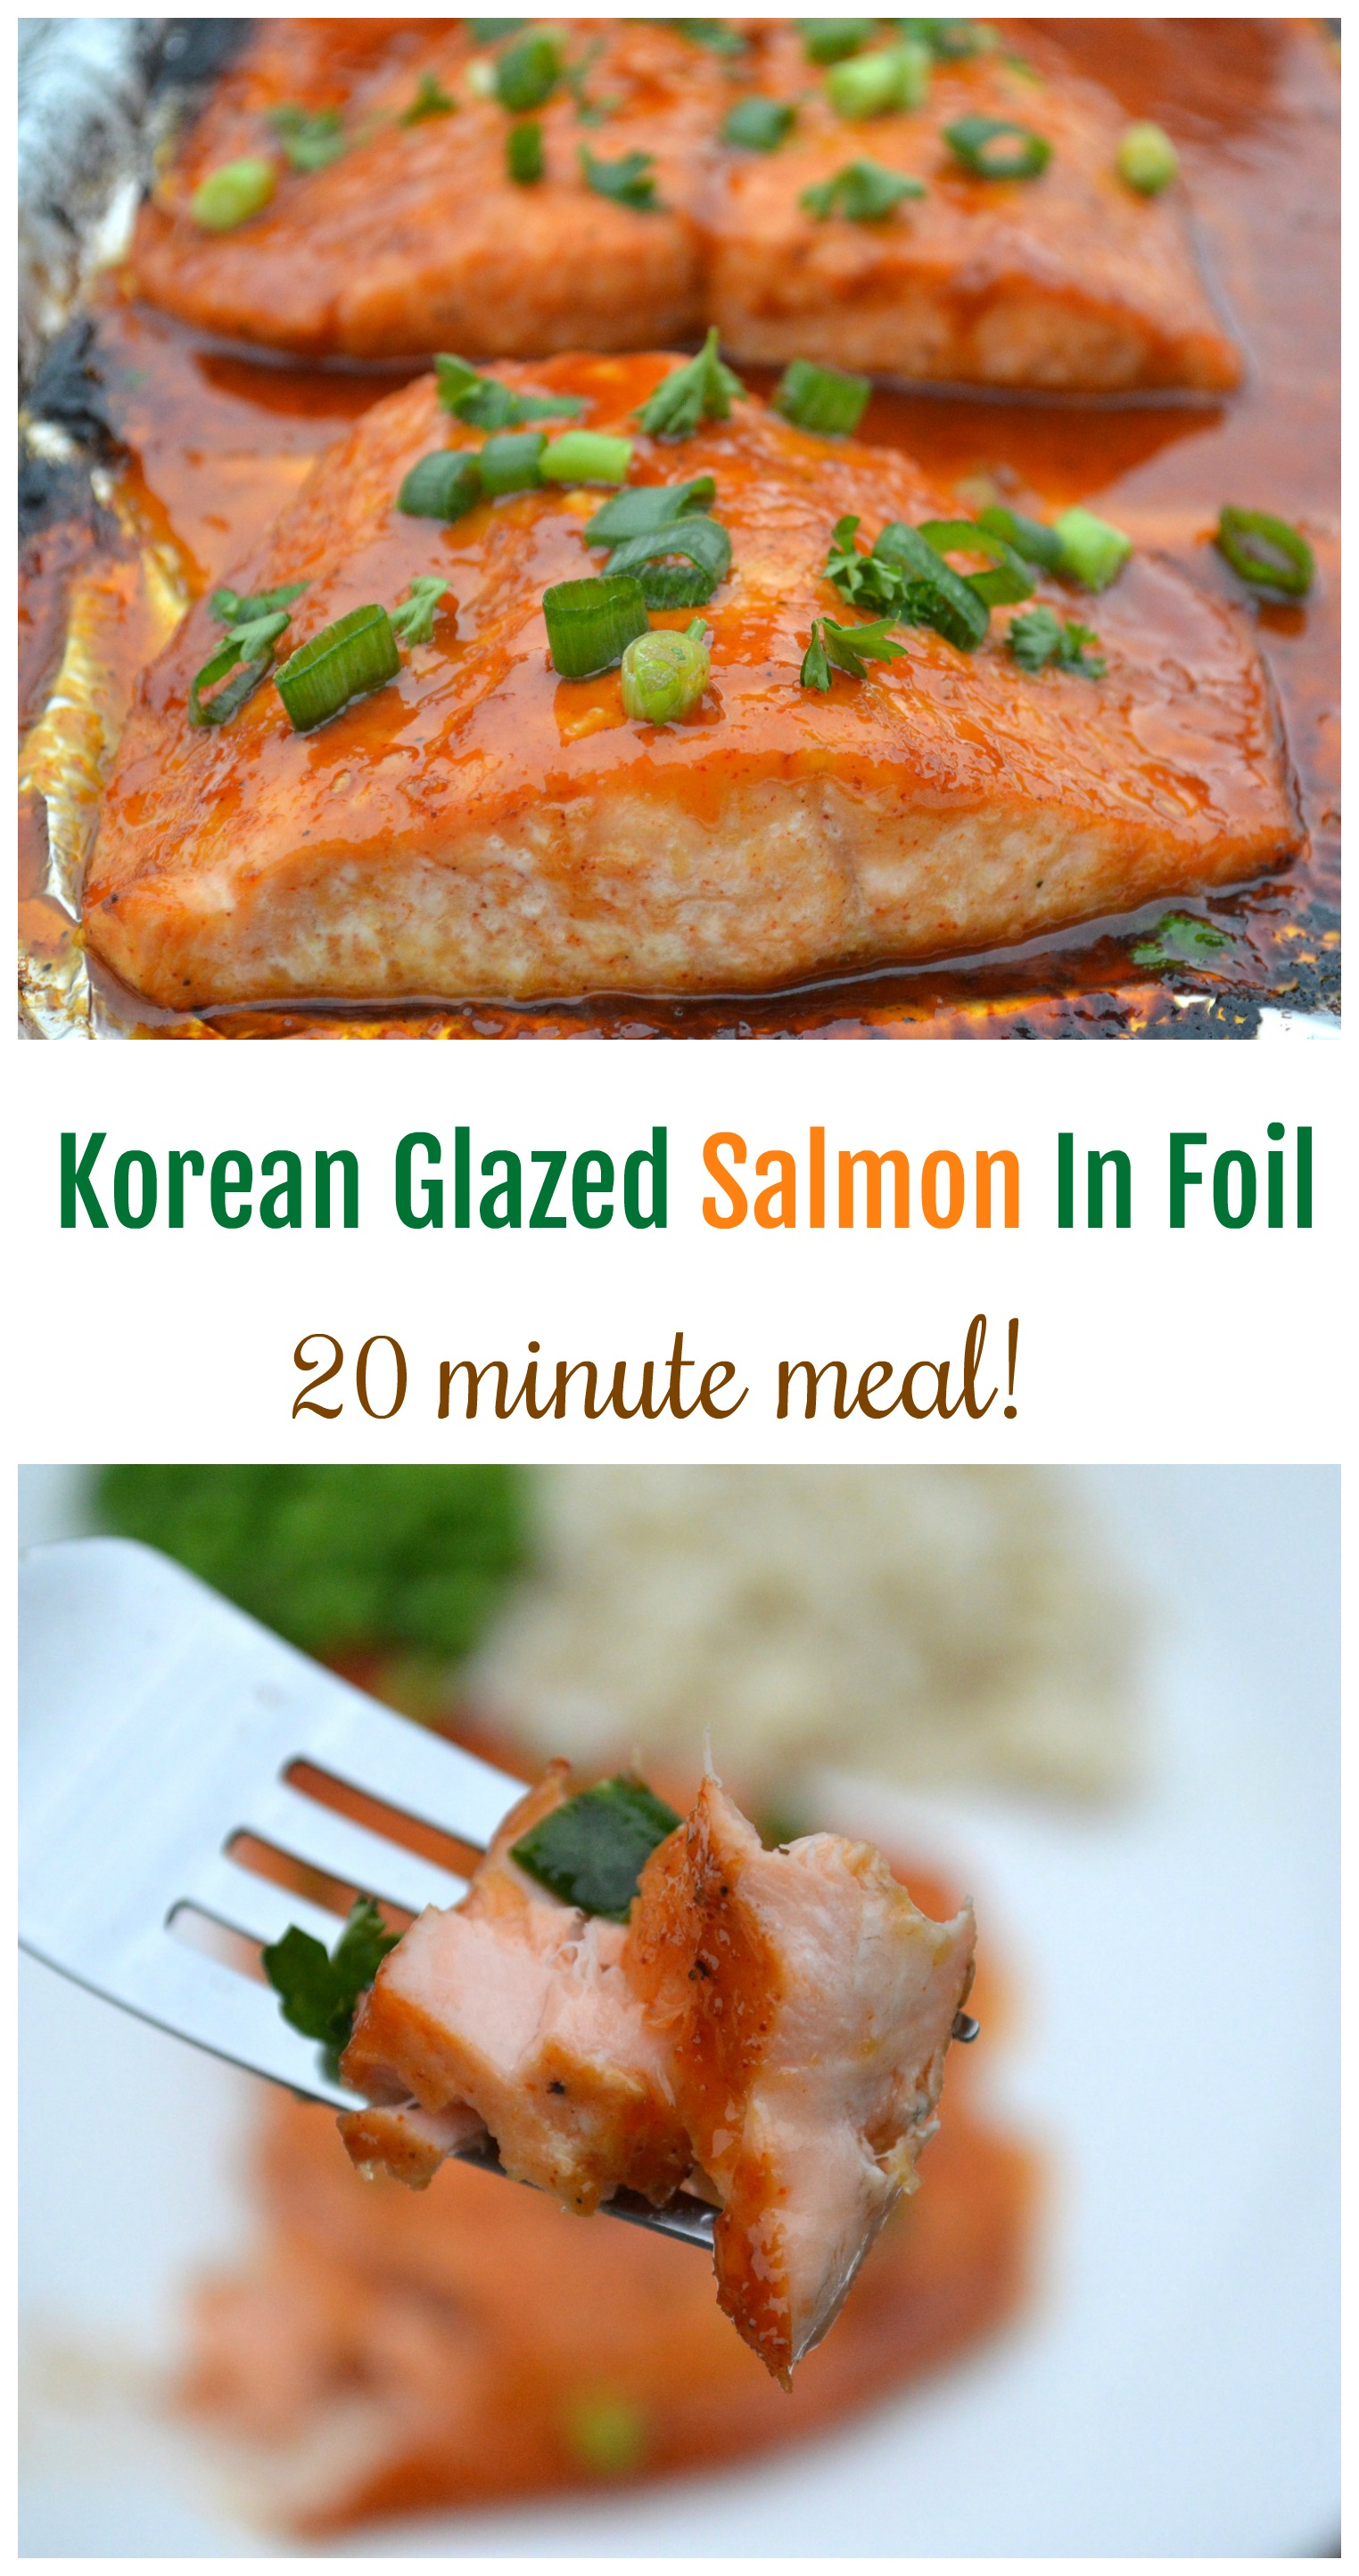 Korean Glazed Salmon in Foil Recipe, packed with protein and just 20 minutes to make!